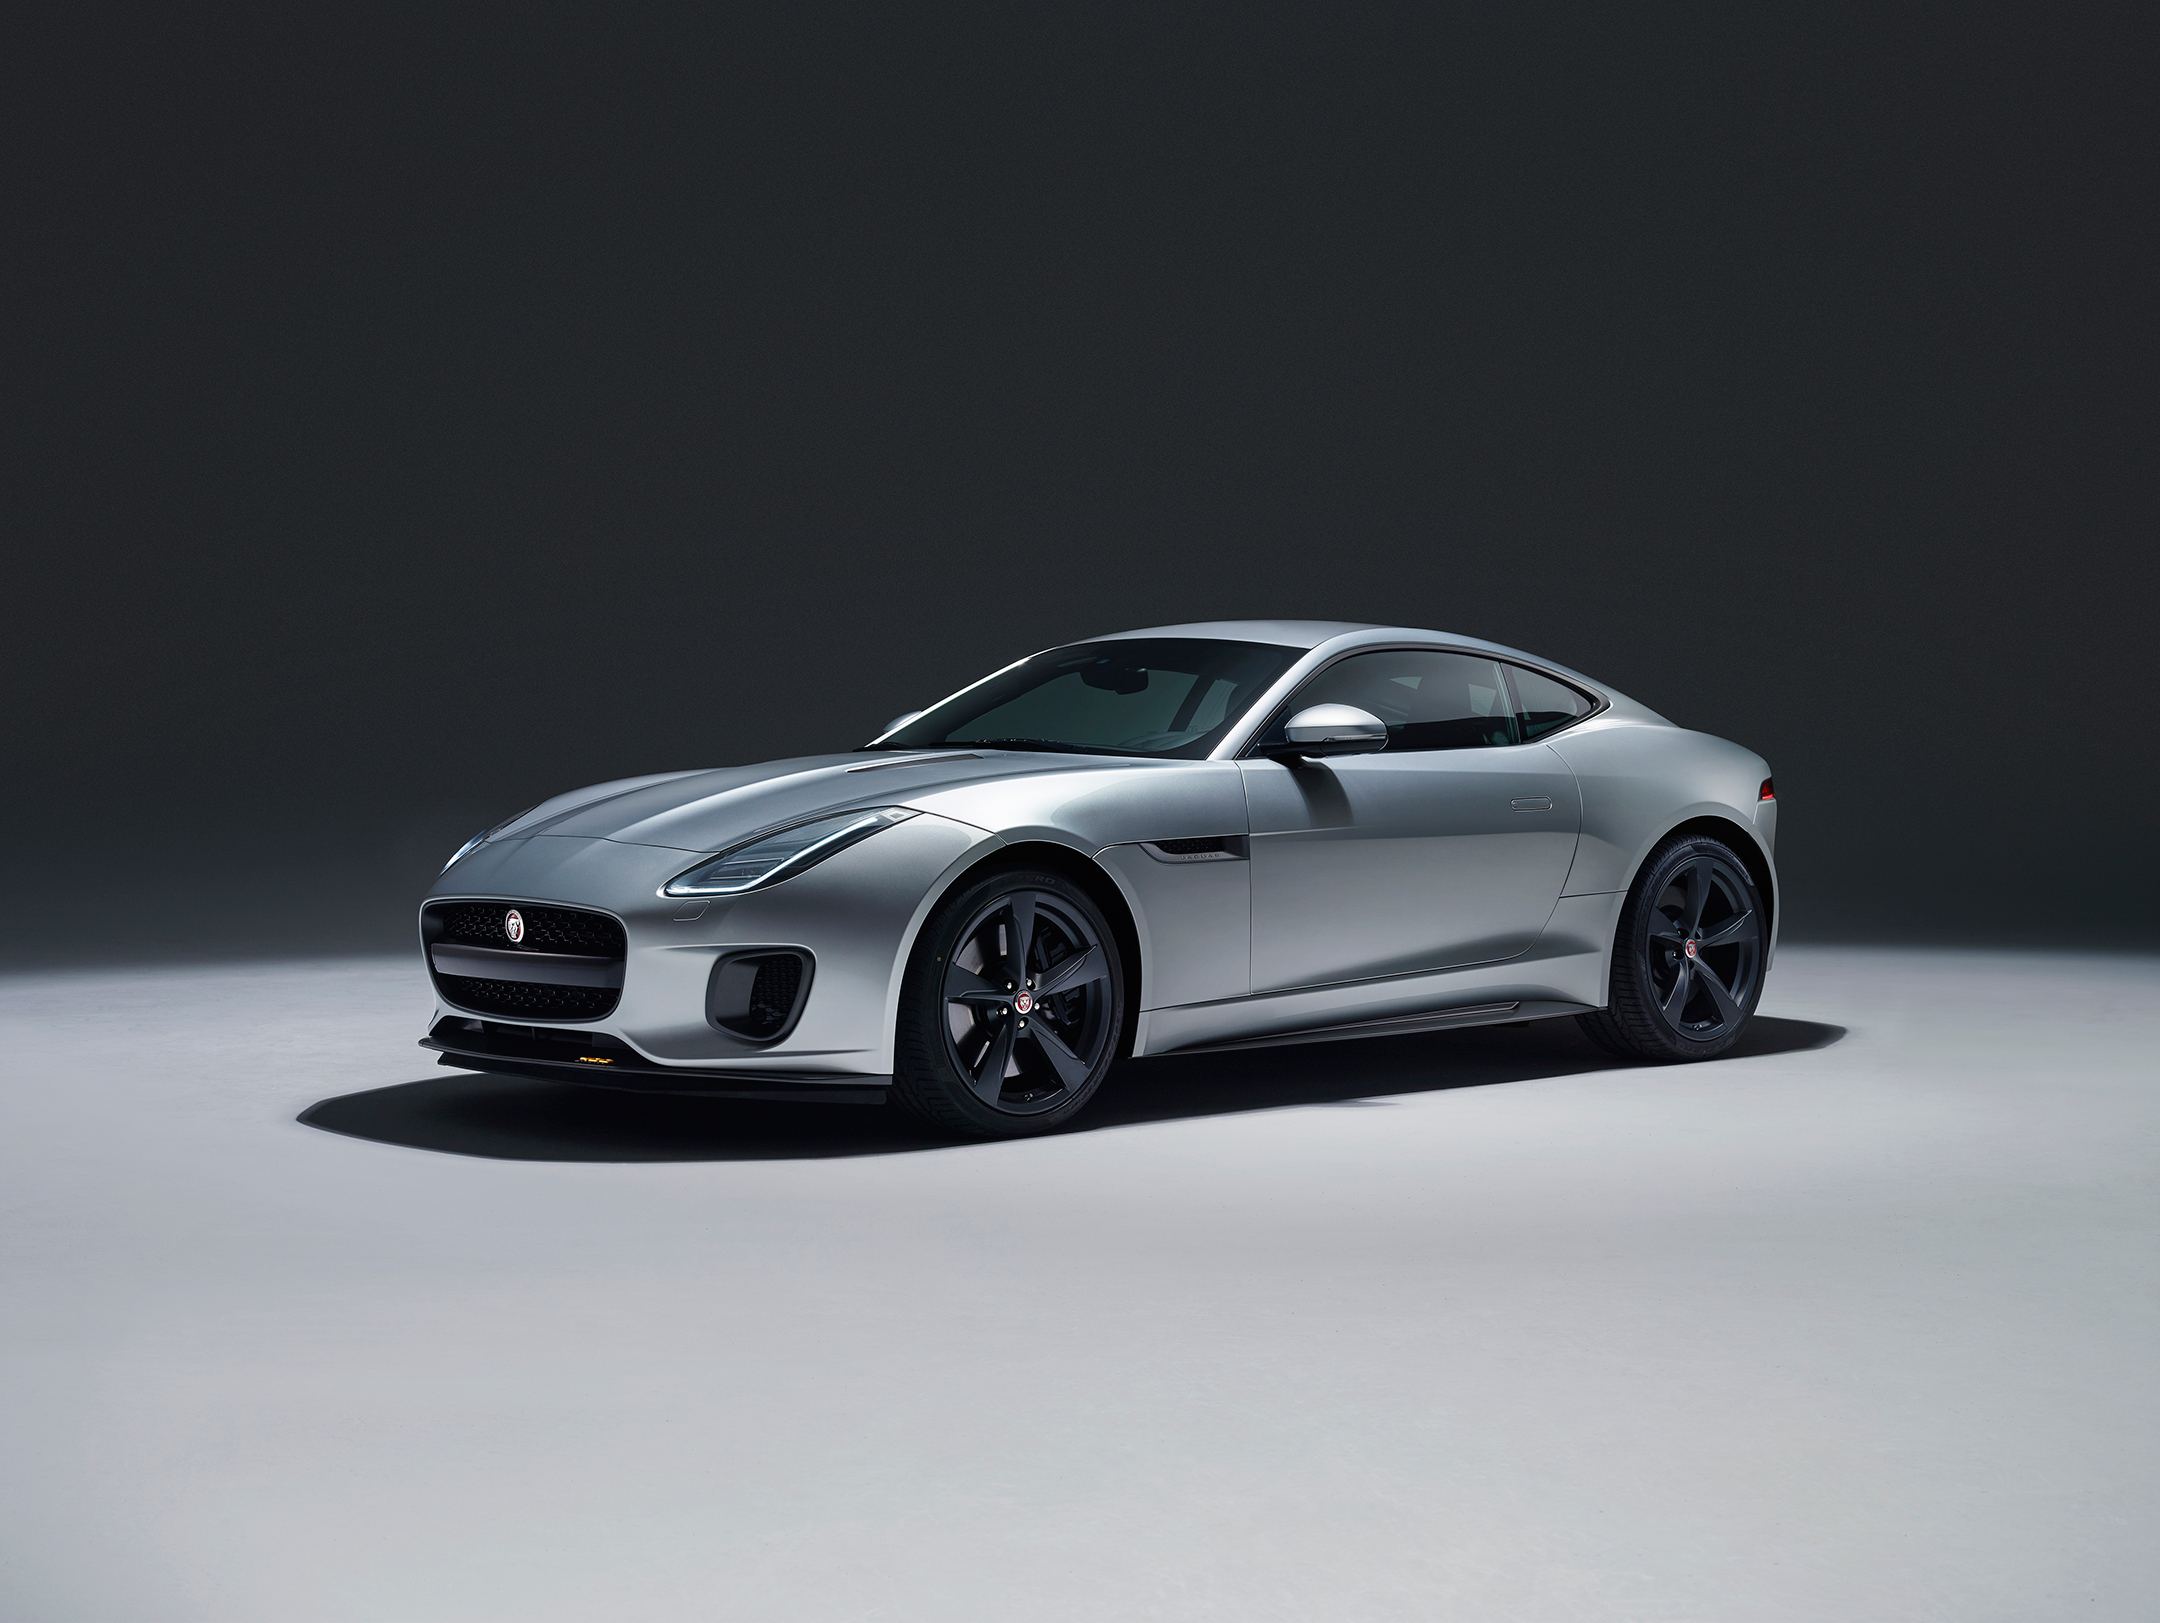 Jaguar F-TYPE 400 Sport - 2017 - front side-face / profil avant